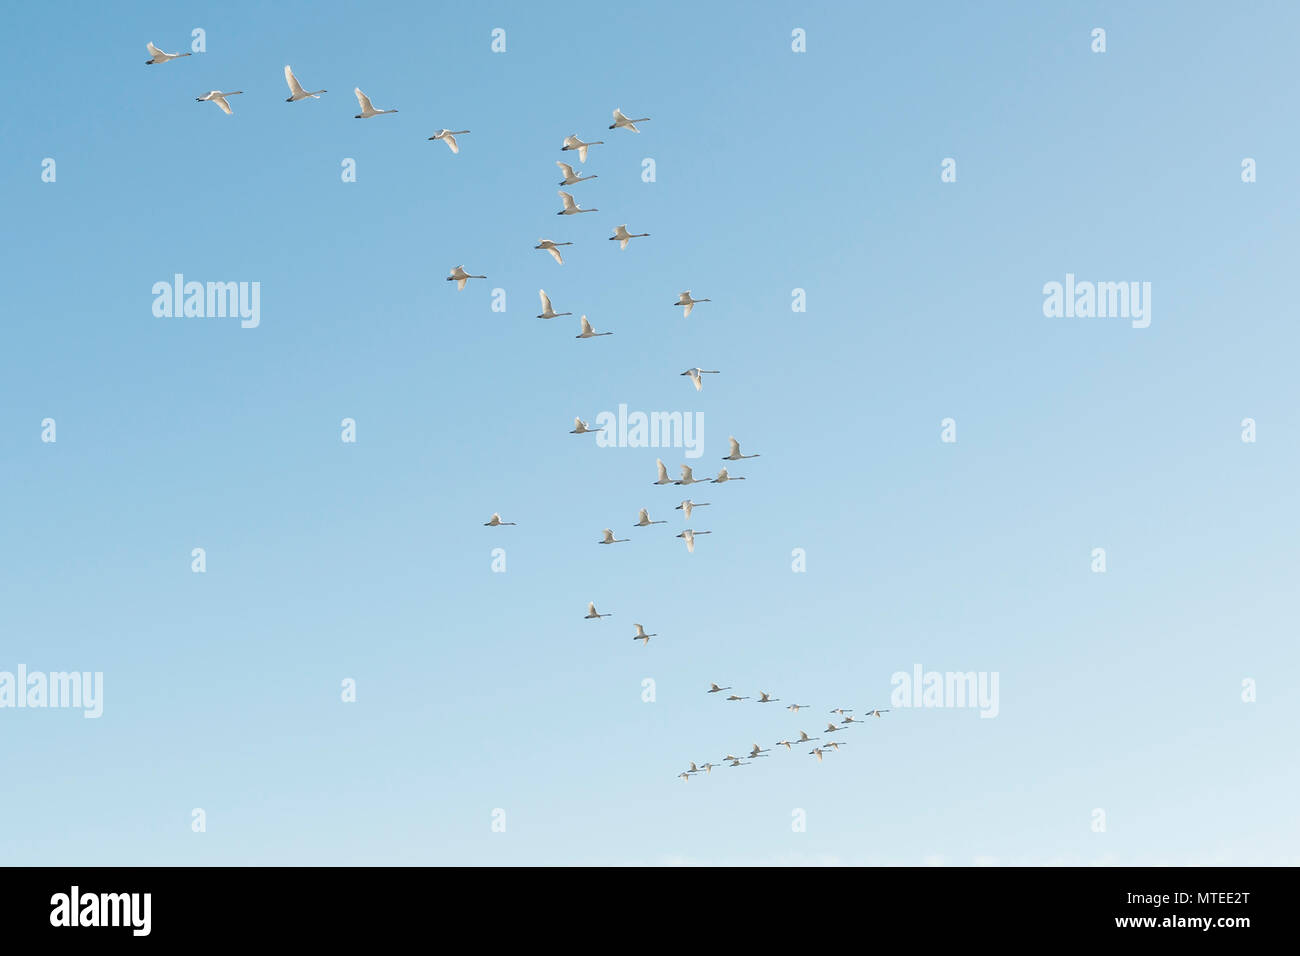 Flock of birds, flying Whooper swans (Cygnus cygnus) in formation, South Iceland, Iceland - Stock Image